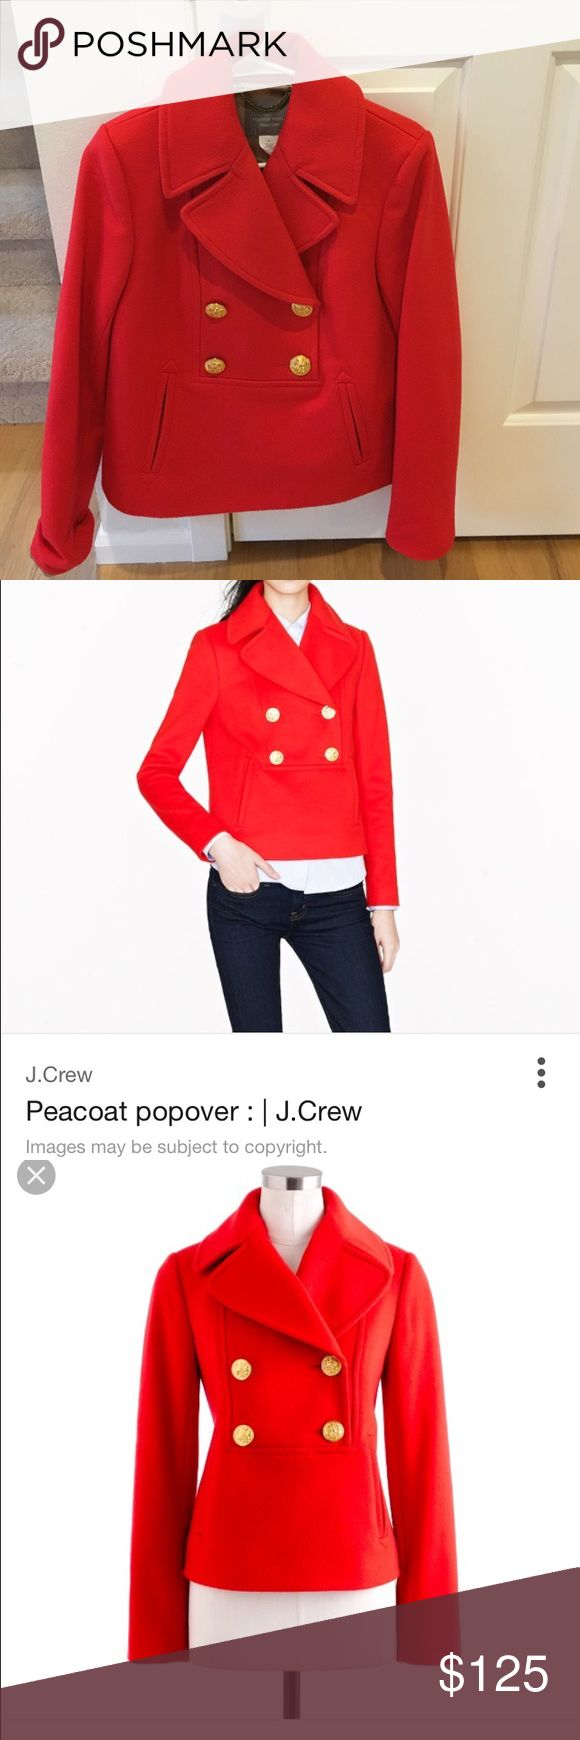 Red Jcrew popover pea coat size 8. See pictures.  Like new condition.  Only worn twice. J. Crew Jackets & Coats Pea Coats